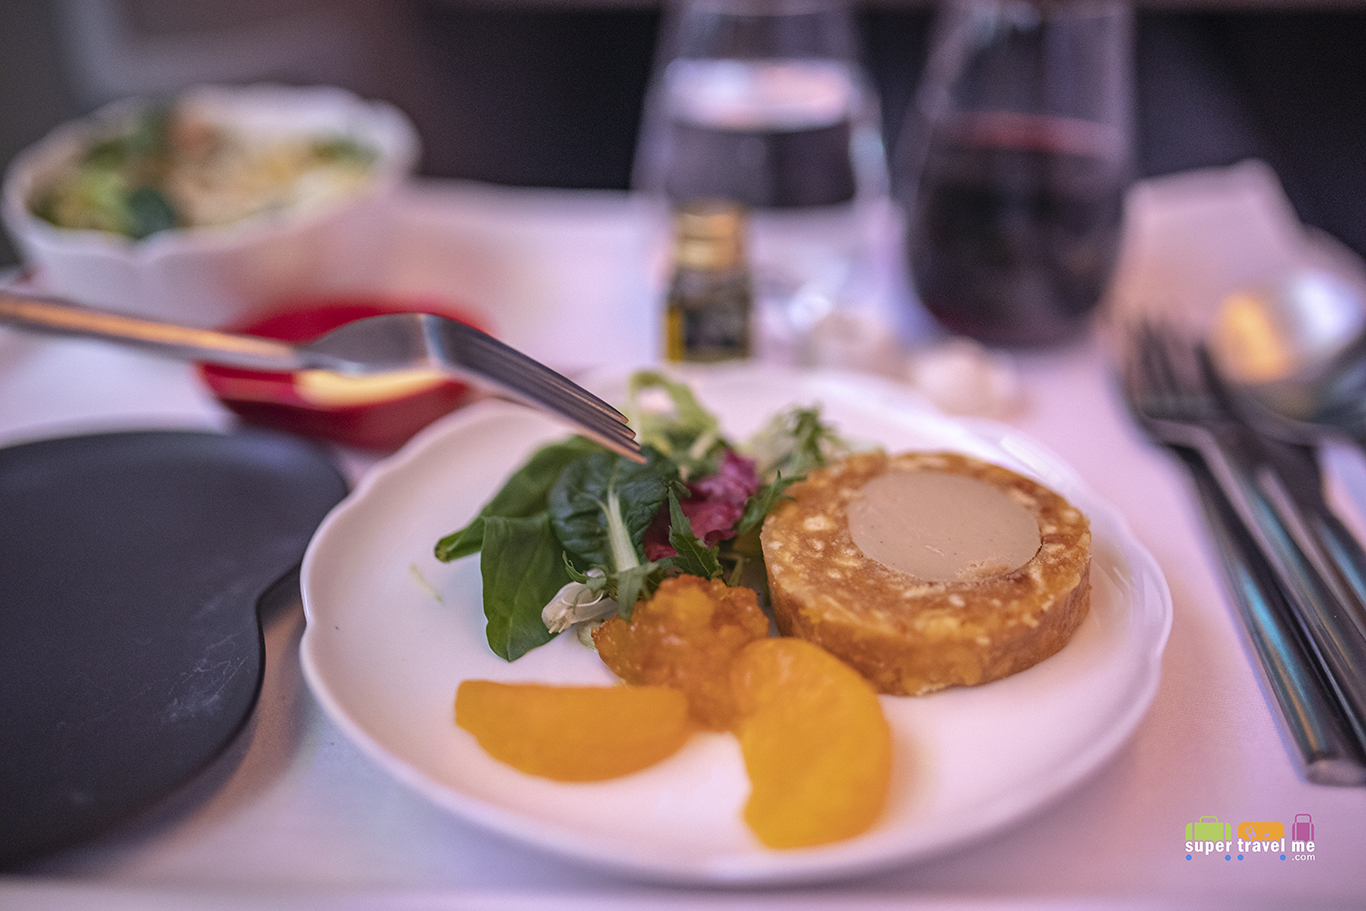 Starter on board Hong Kong Airlines flight from Hong Kong to Los Angeles - Foie grass stuffed sachima with a mandarin marmalade